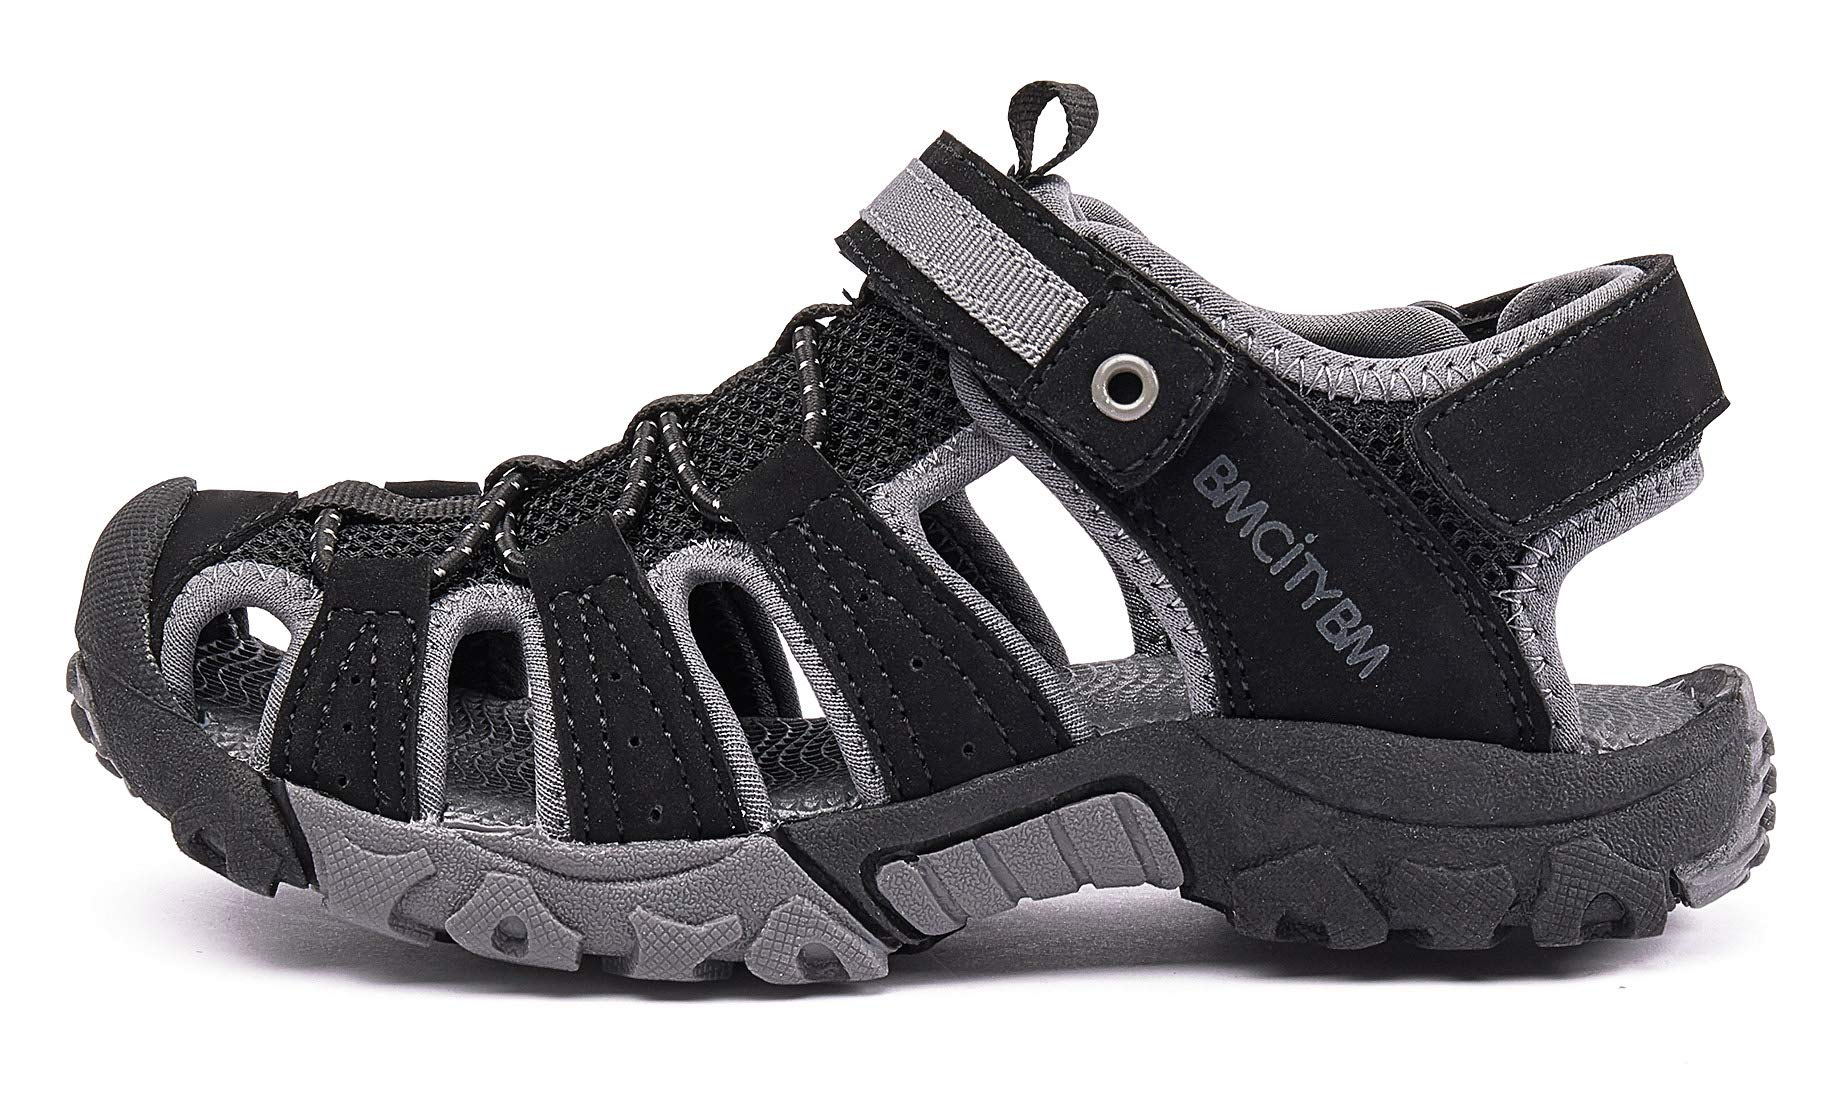 BMCiTYBM Girls Boys Hiking Sport Sandals Toddler Kid Closed Toe Water Shoes Black Size 3 by BMCiTYBM (Image #9)